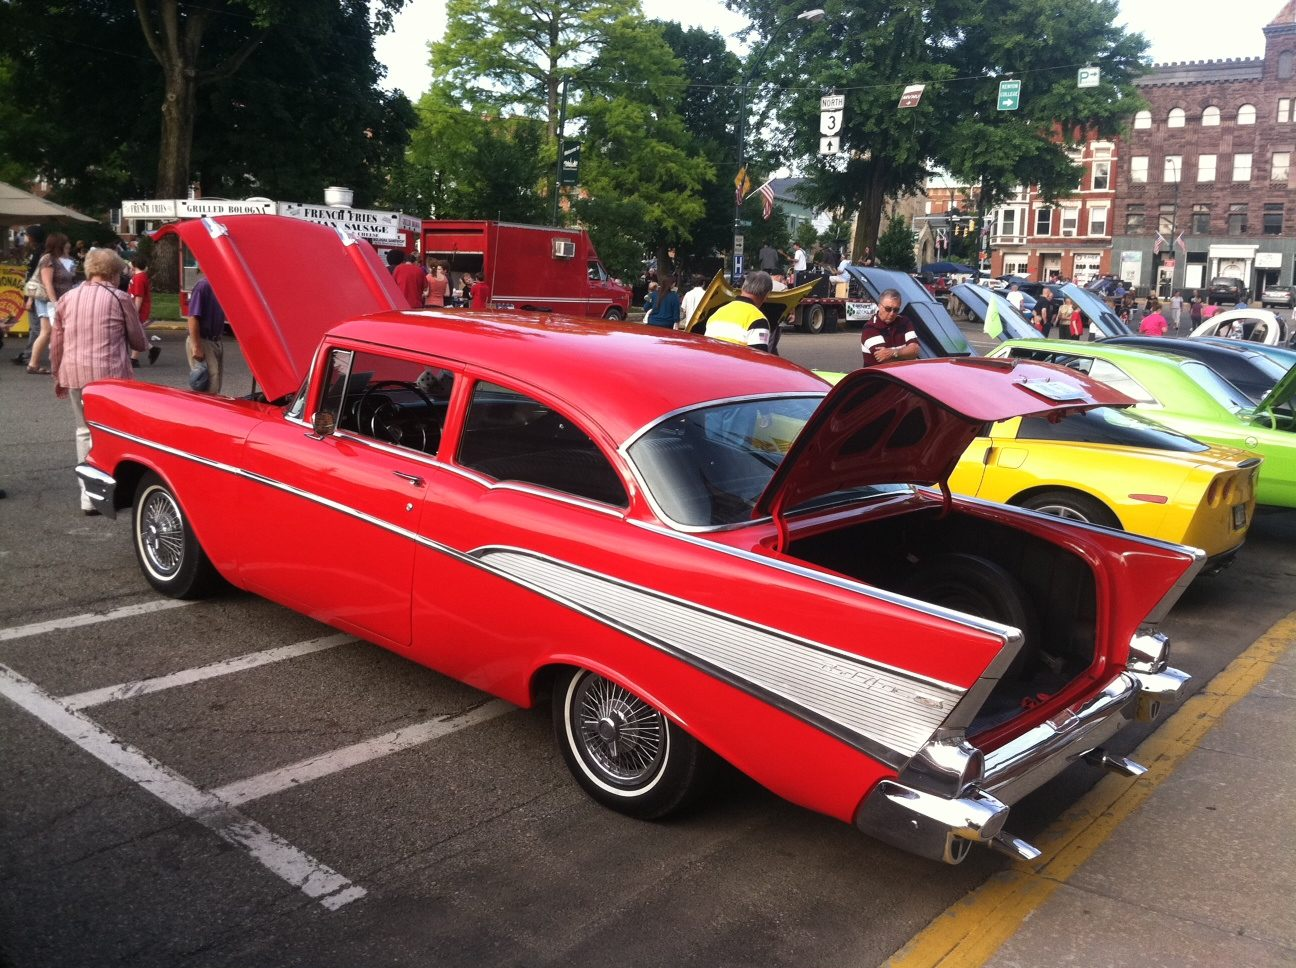 Mount Vernon Ohio First Friday Car Show Rich and Kathy Hardwick 57 Chevy Photo by Sam Miller